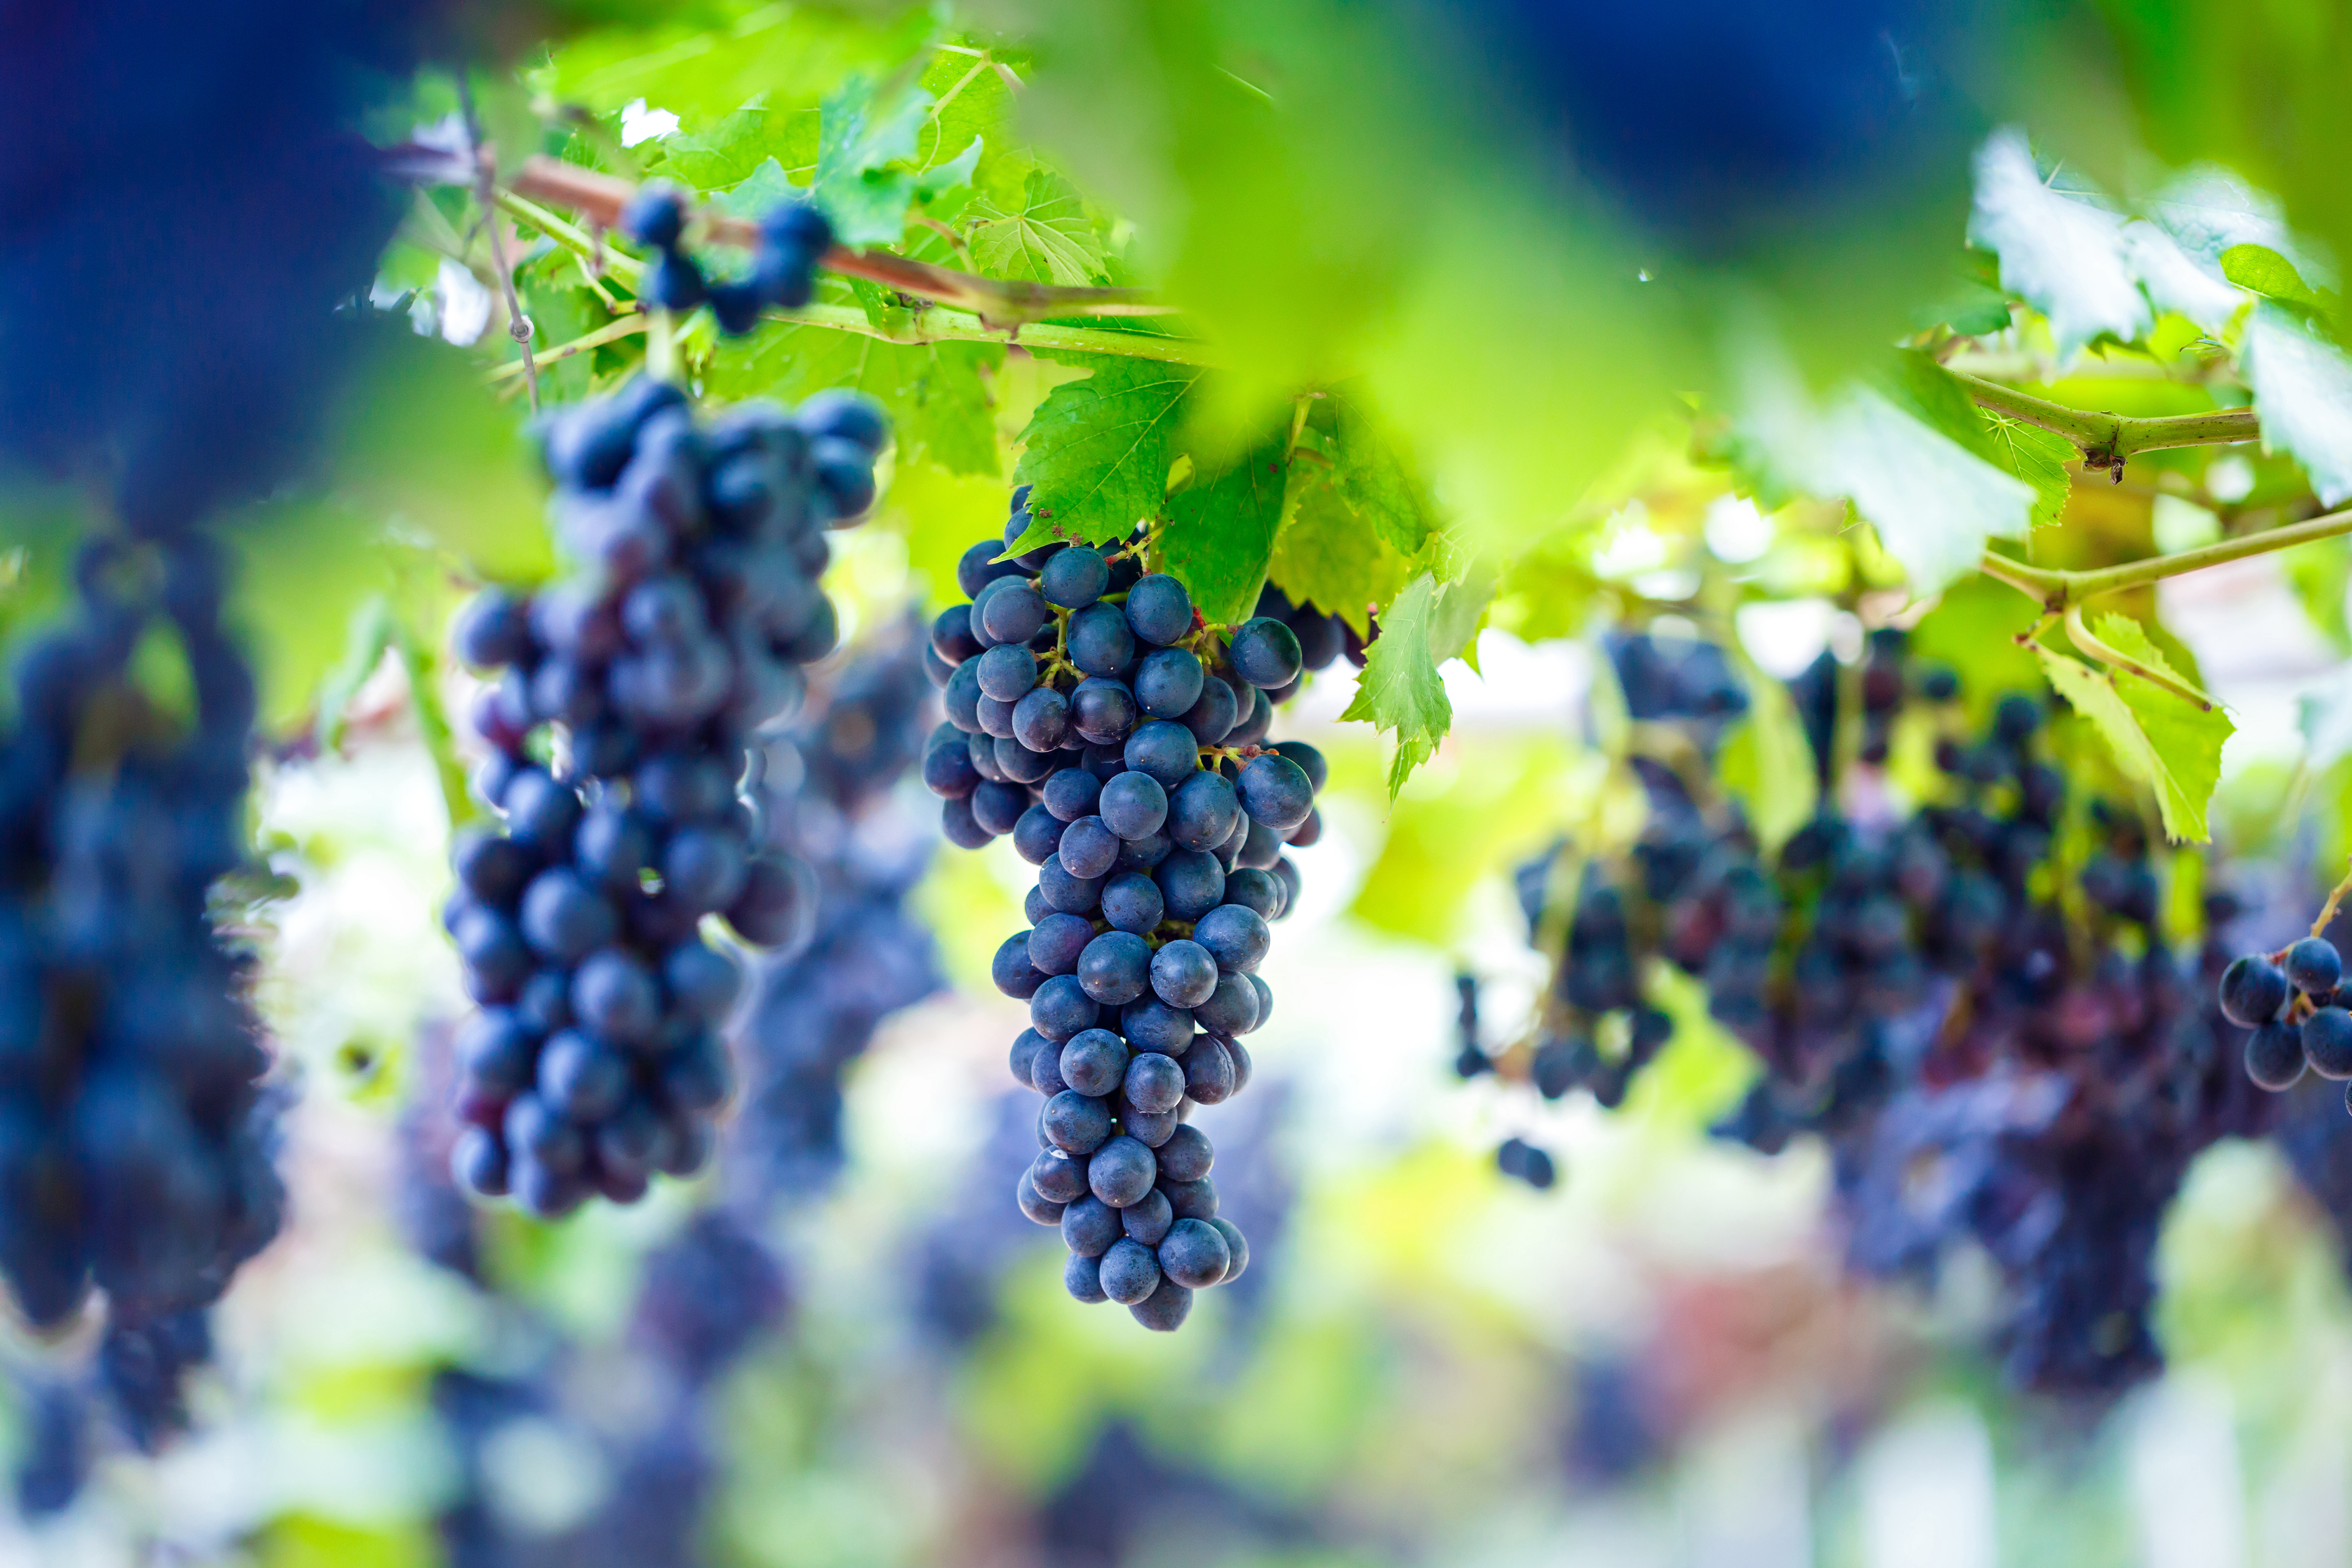 Close Up,Of,Bunches,Of,Ripe,Red,Wine,Grapes,On,Vine